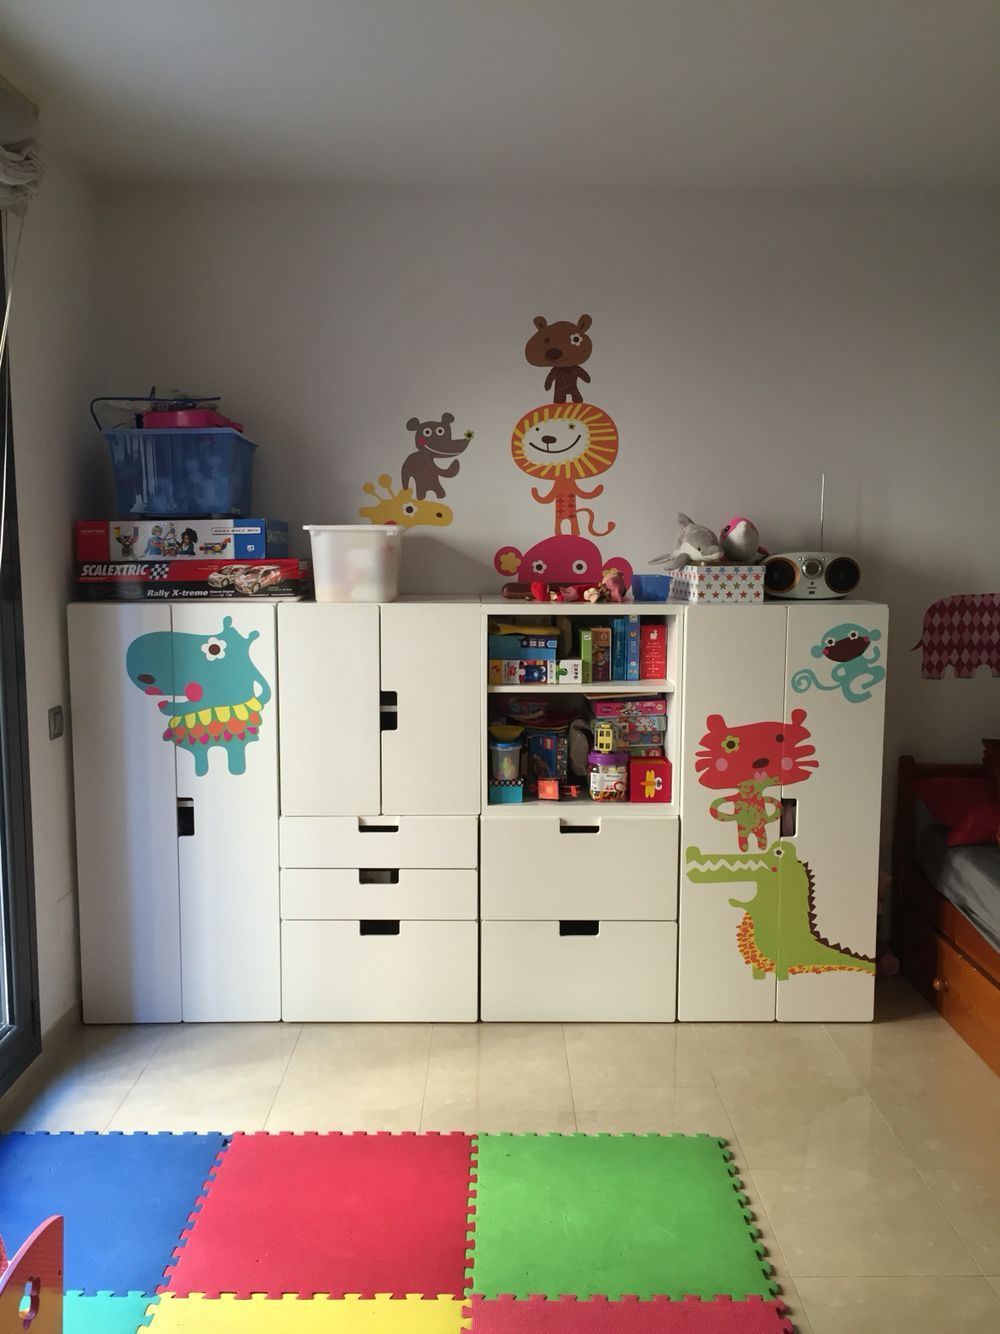 Pin by Ian Cantalejo on just photo | Kids bedroom furniture ...